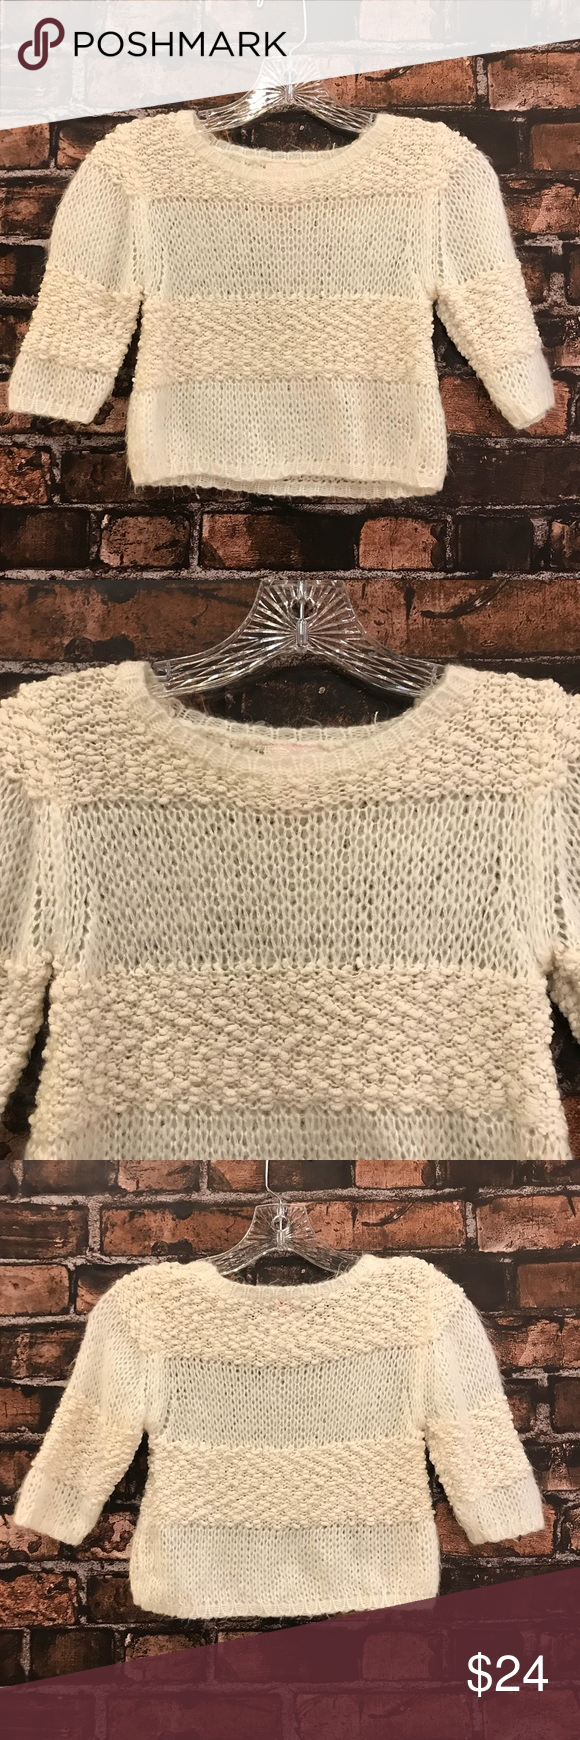 GB girls sweater! Multi texture beige sweater! Loose stitching, would be cute with a black top underneath! Size small. GB Girls Shirts & Tops Sweaters